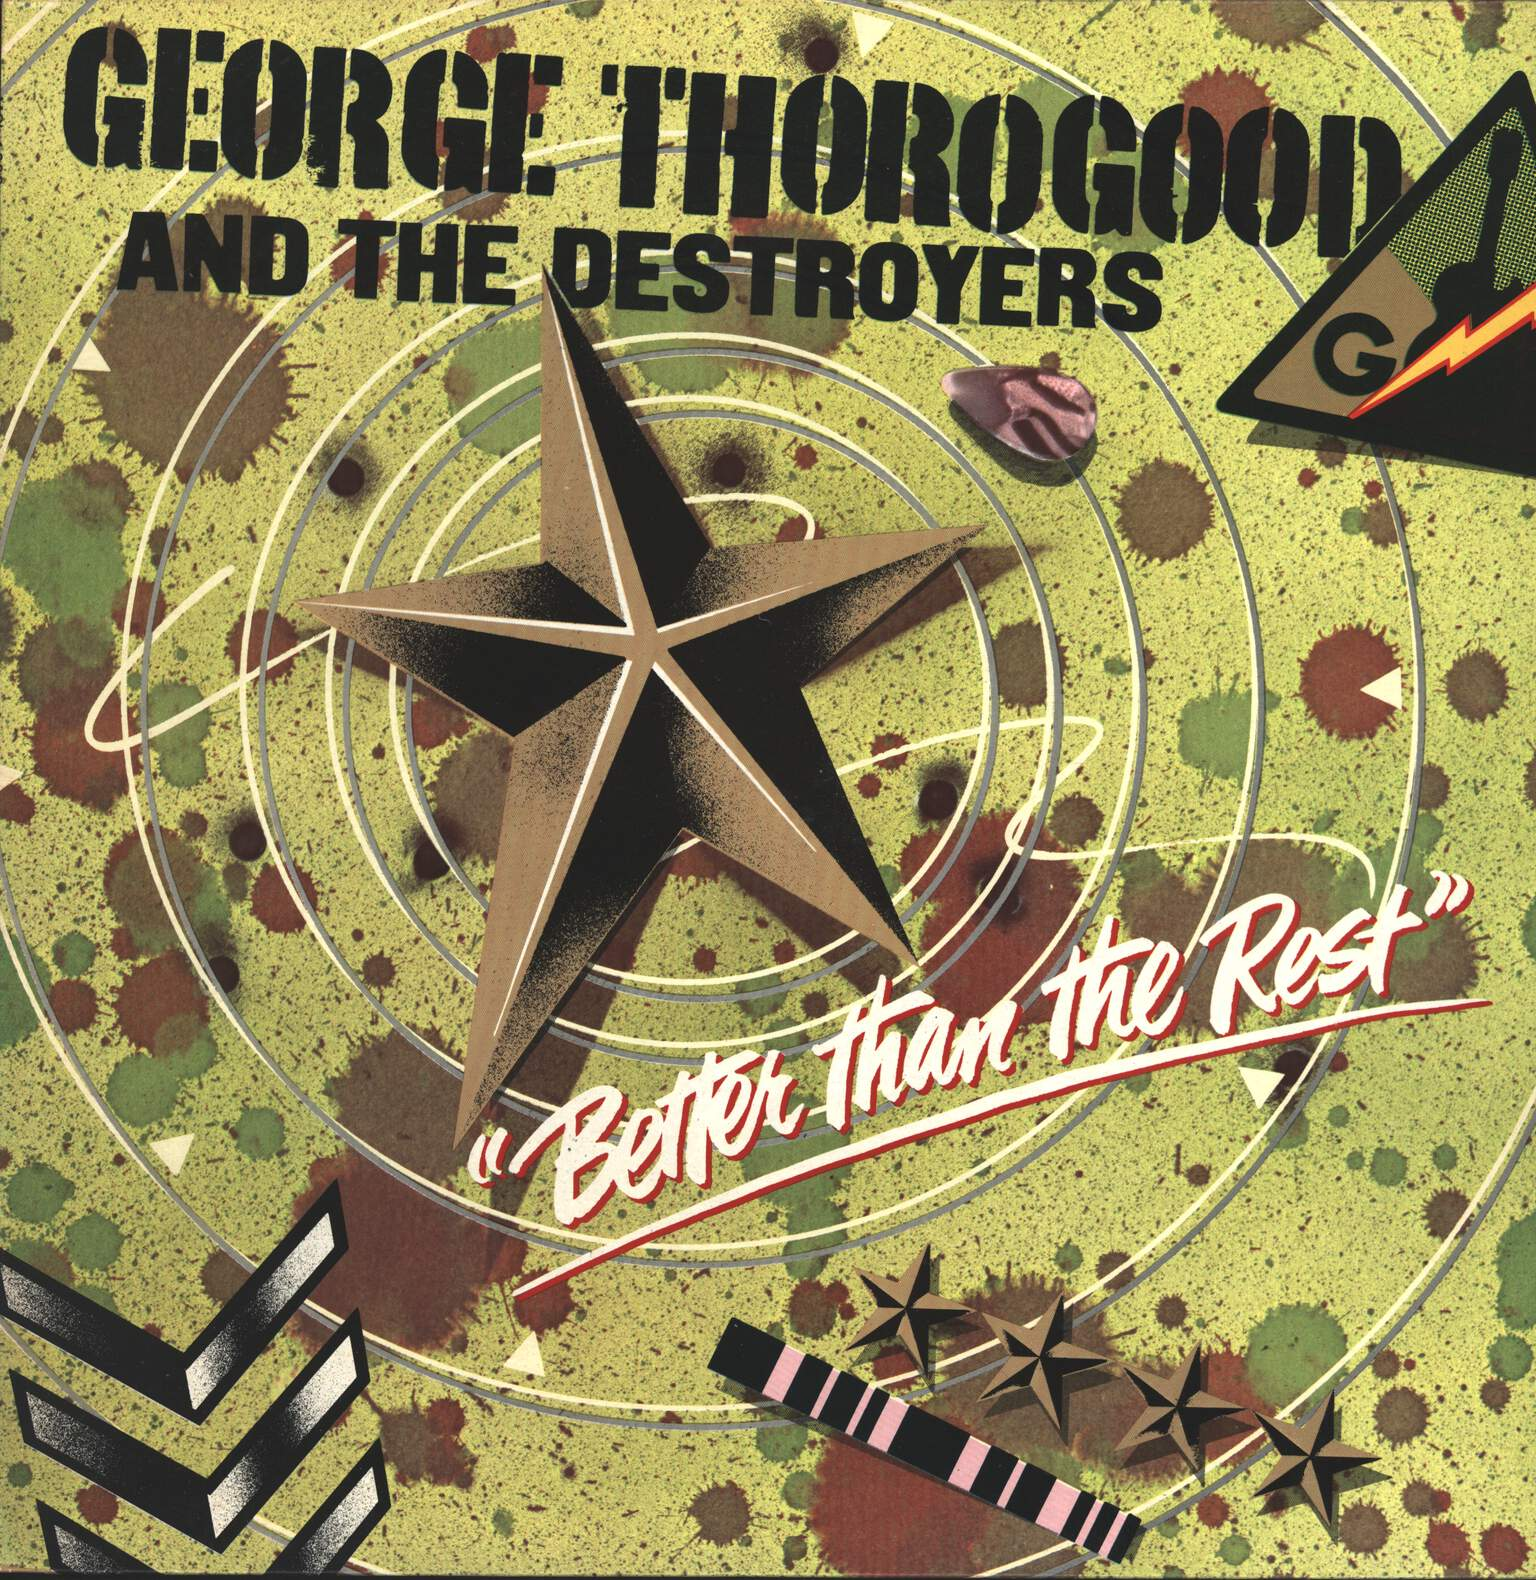 George Thorogood & The Destroyers: Better Than The Rest, LP (Vinyl)